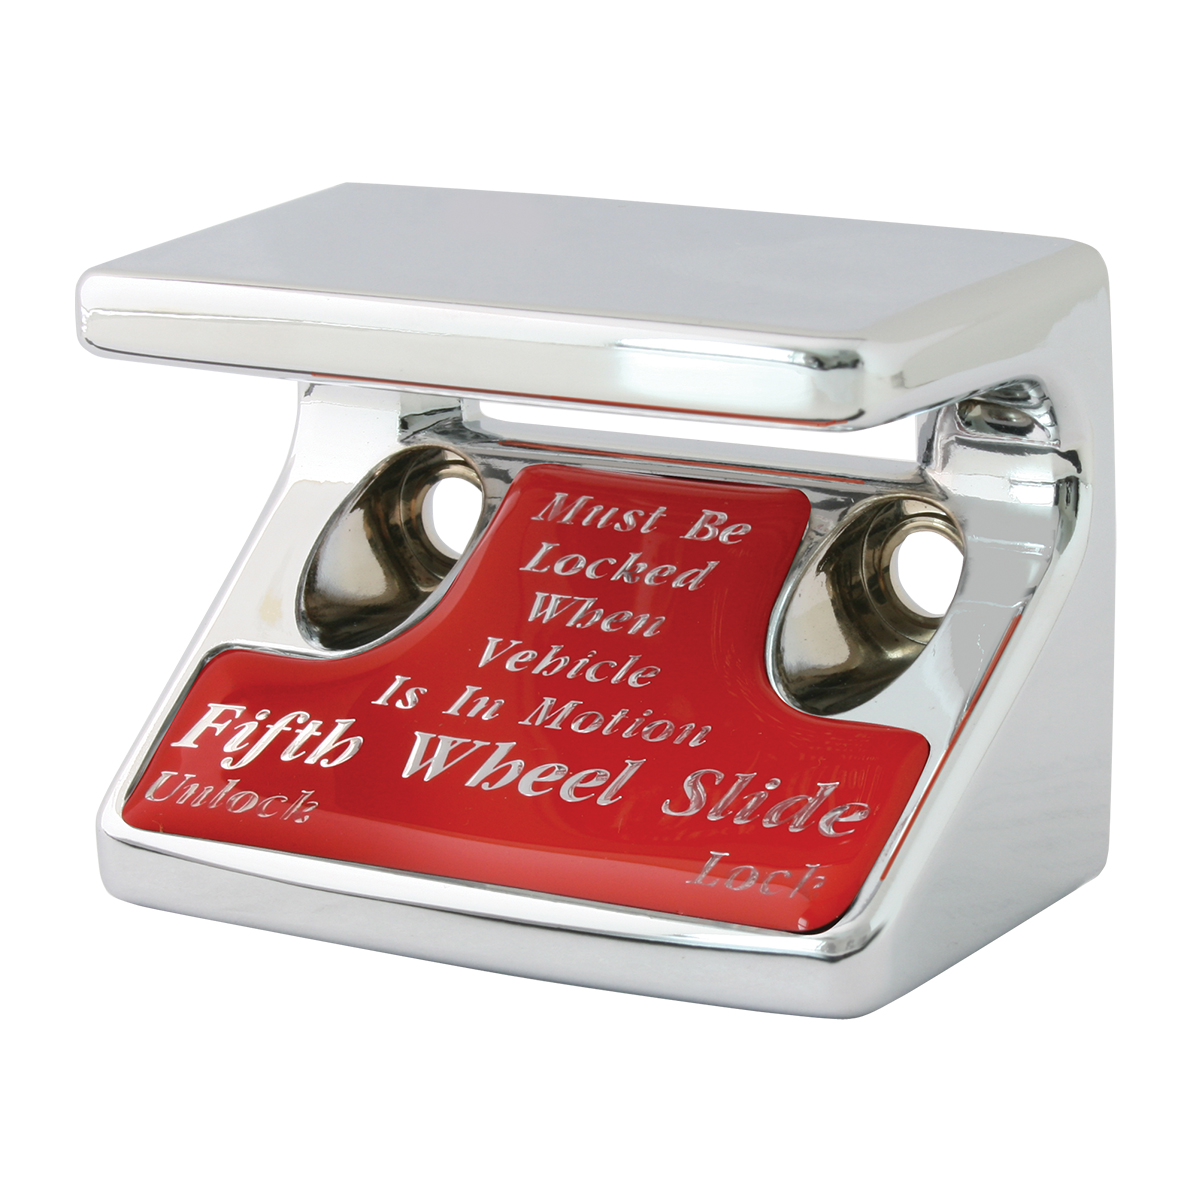 96125 5th Wheel Switch Guard in Red Glossy Sticker